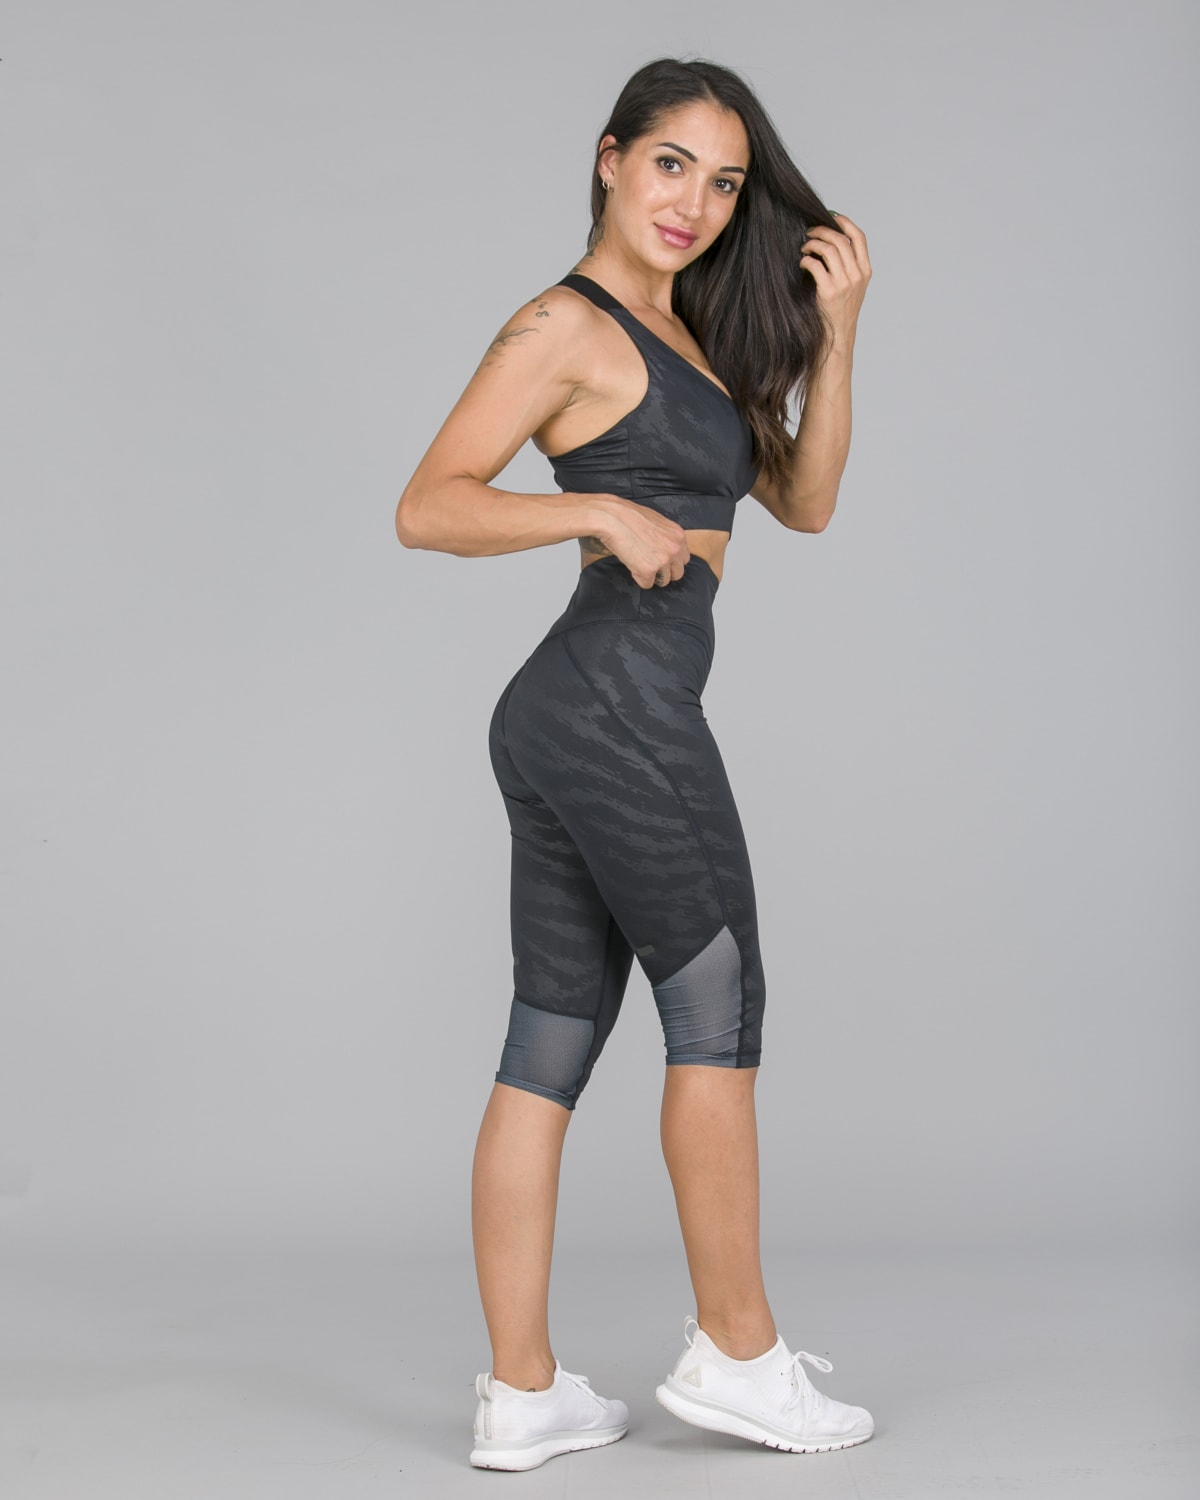 Workout Empire – Elevate 3:4 Leggings – Svart3